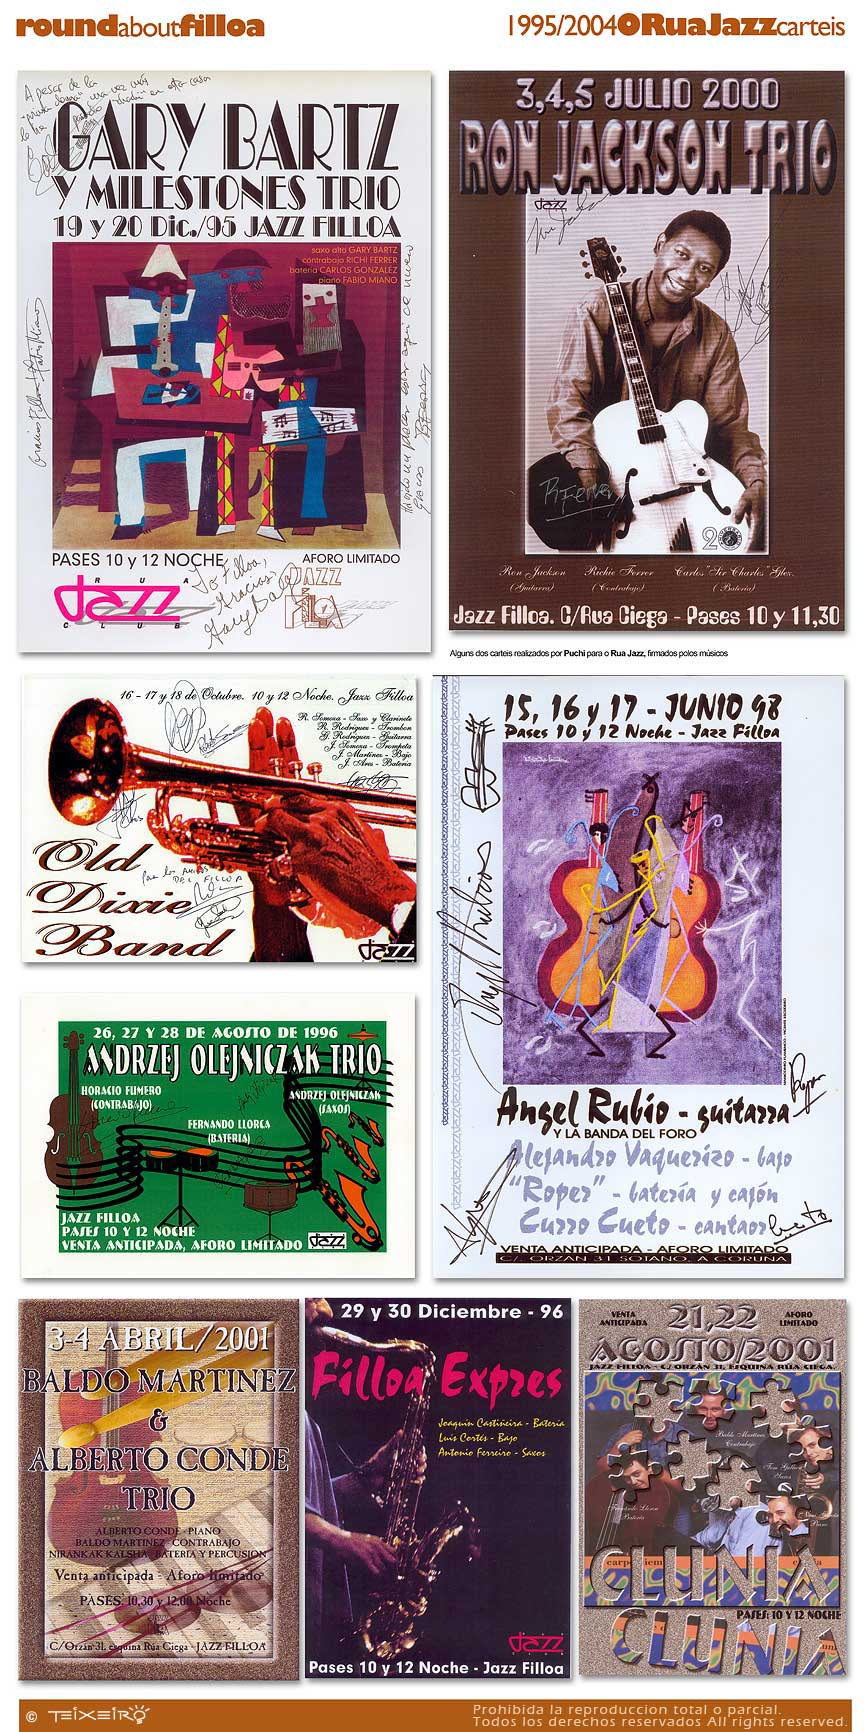 Doble Sesion: Don Pullen (Random Thoughts) & Don Byas Quartet feat. Sir Charles Thompson Rua08carteles2